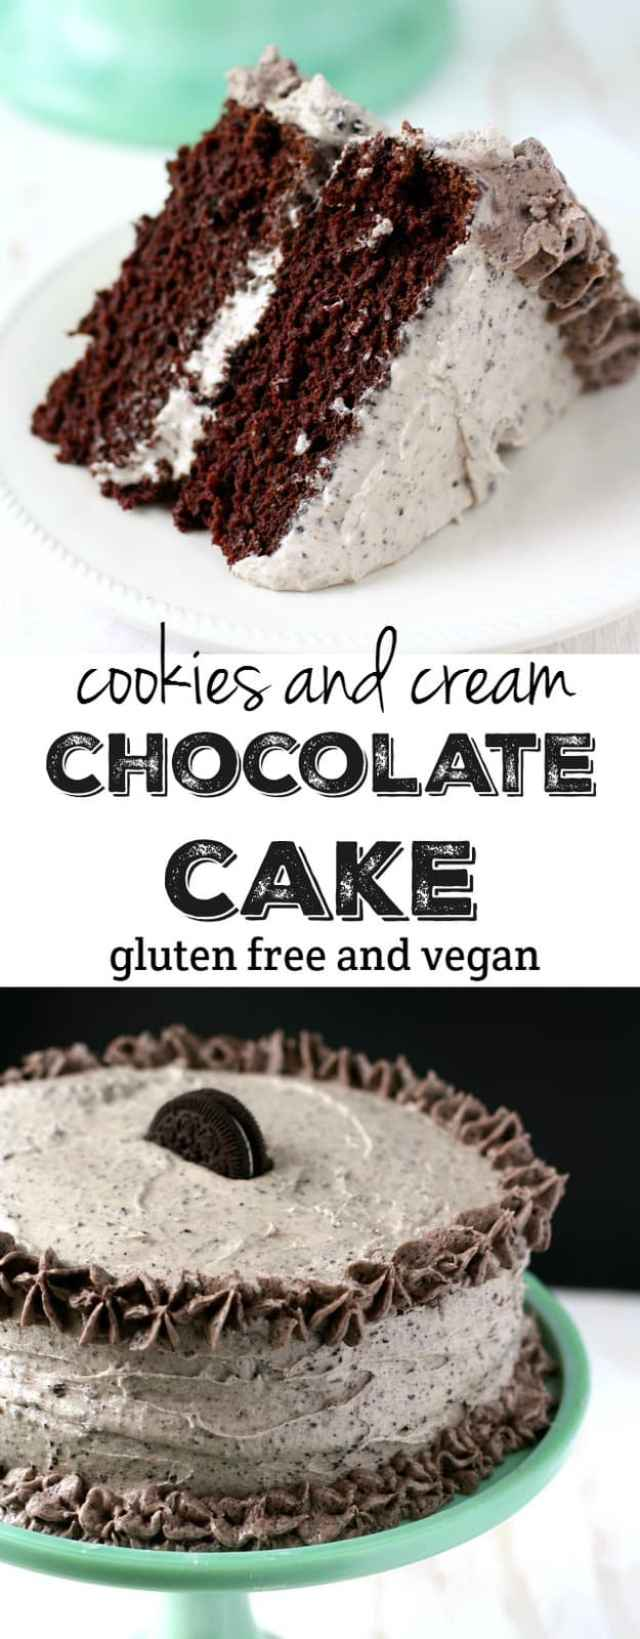 What's more fun than chocolate cake? Chocolate cookies and cream cake, of course!